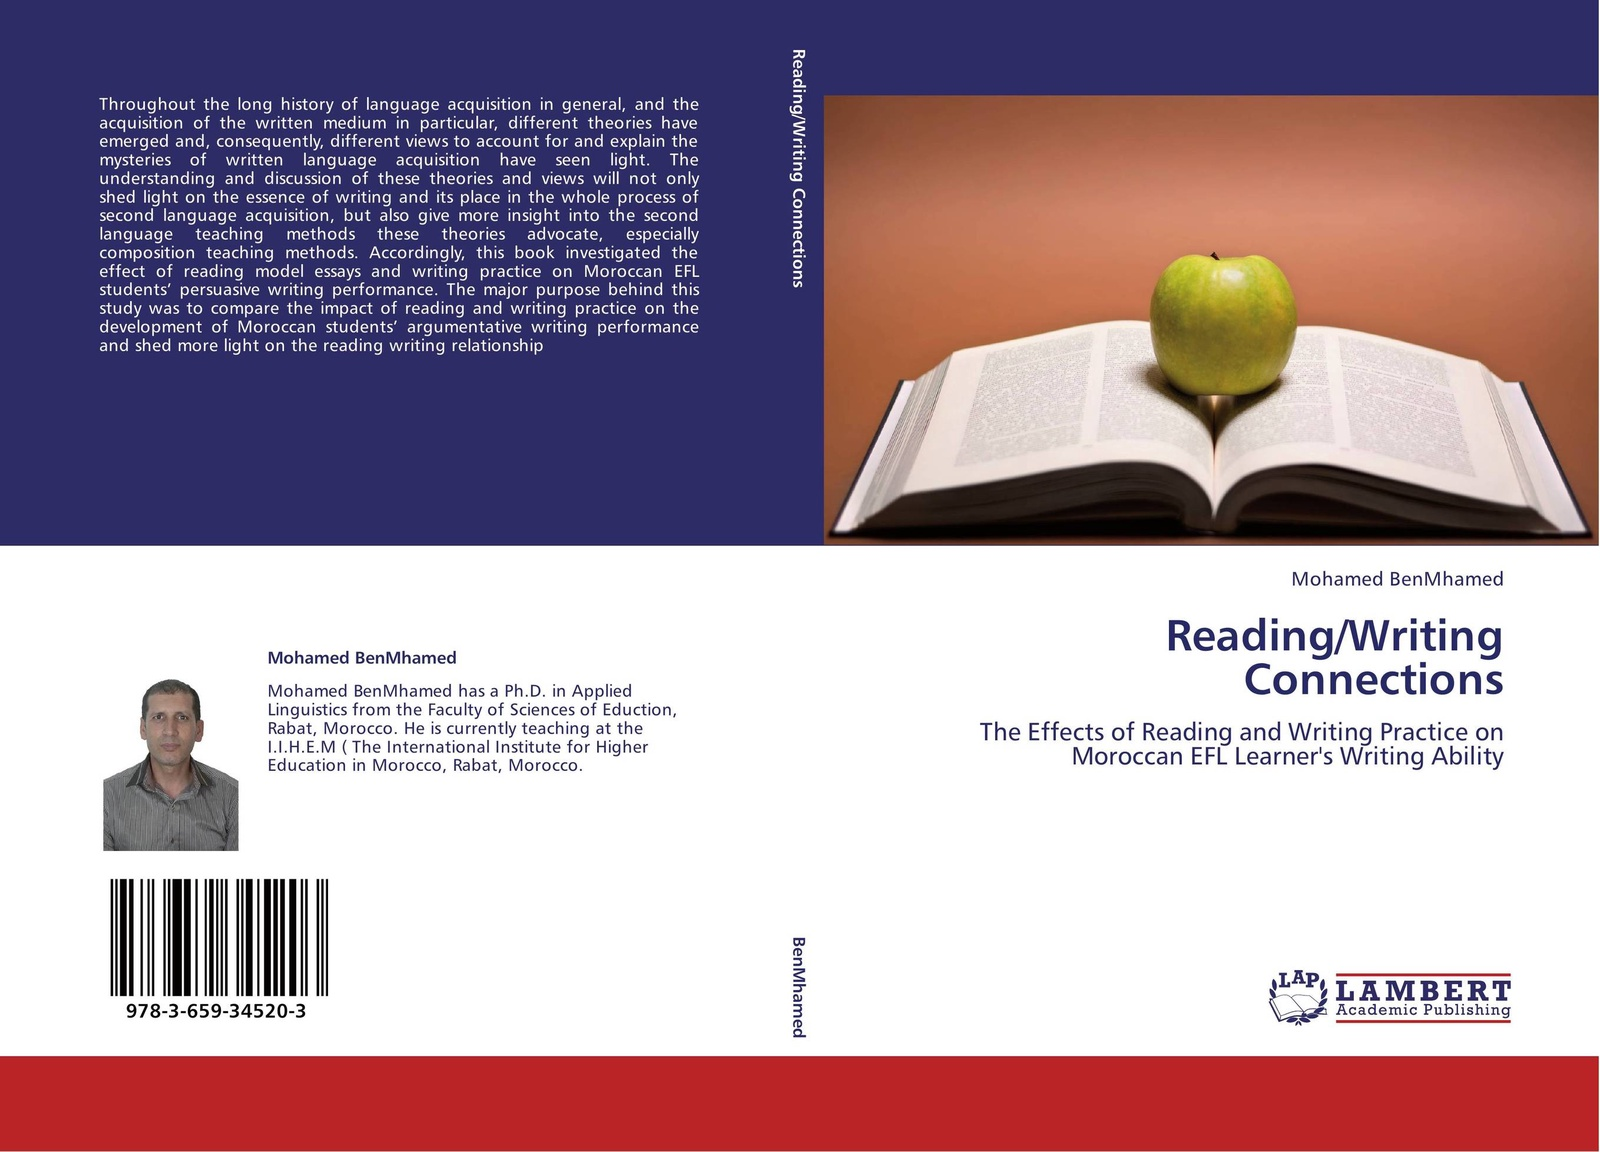 Mohamed BenMhamed Reading/Writing Connections fm radio language and its effect on the young listeners